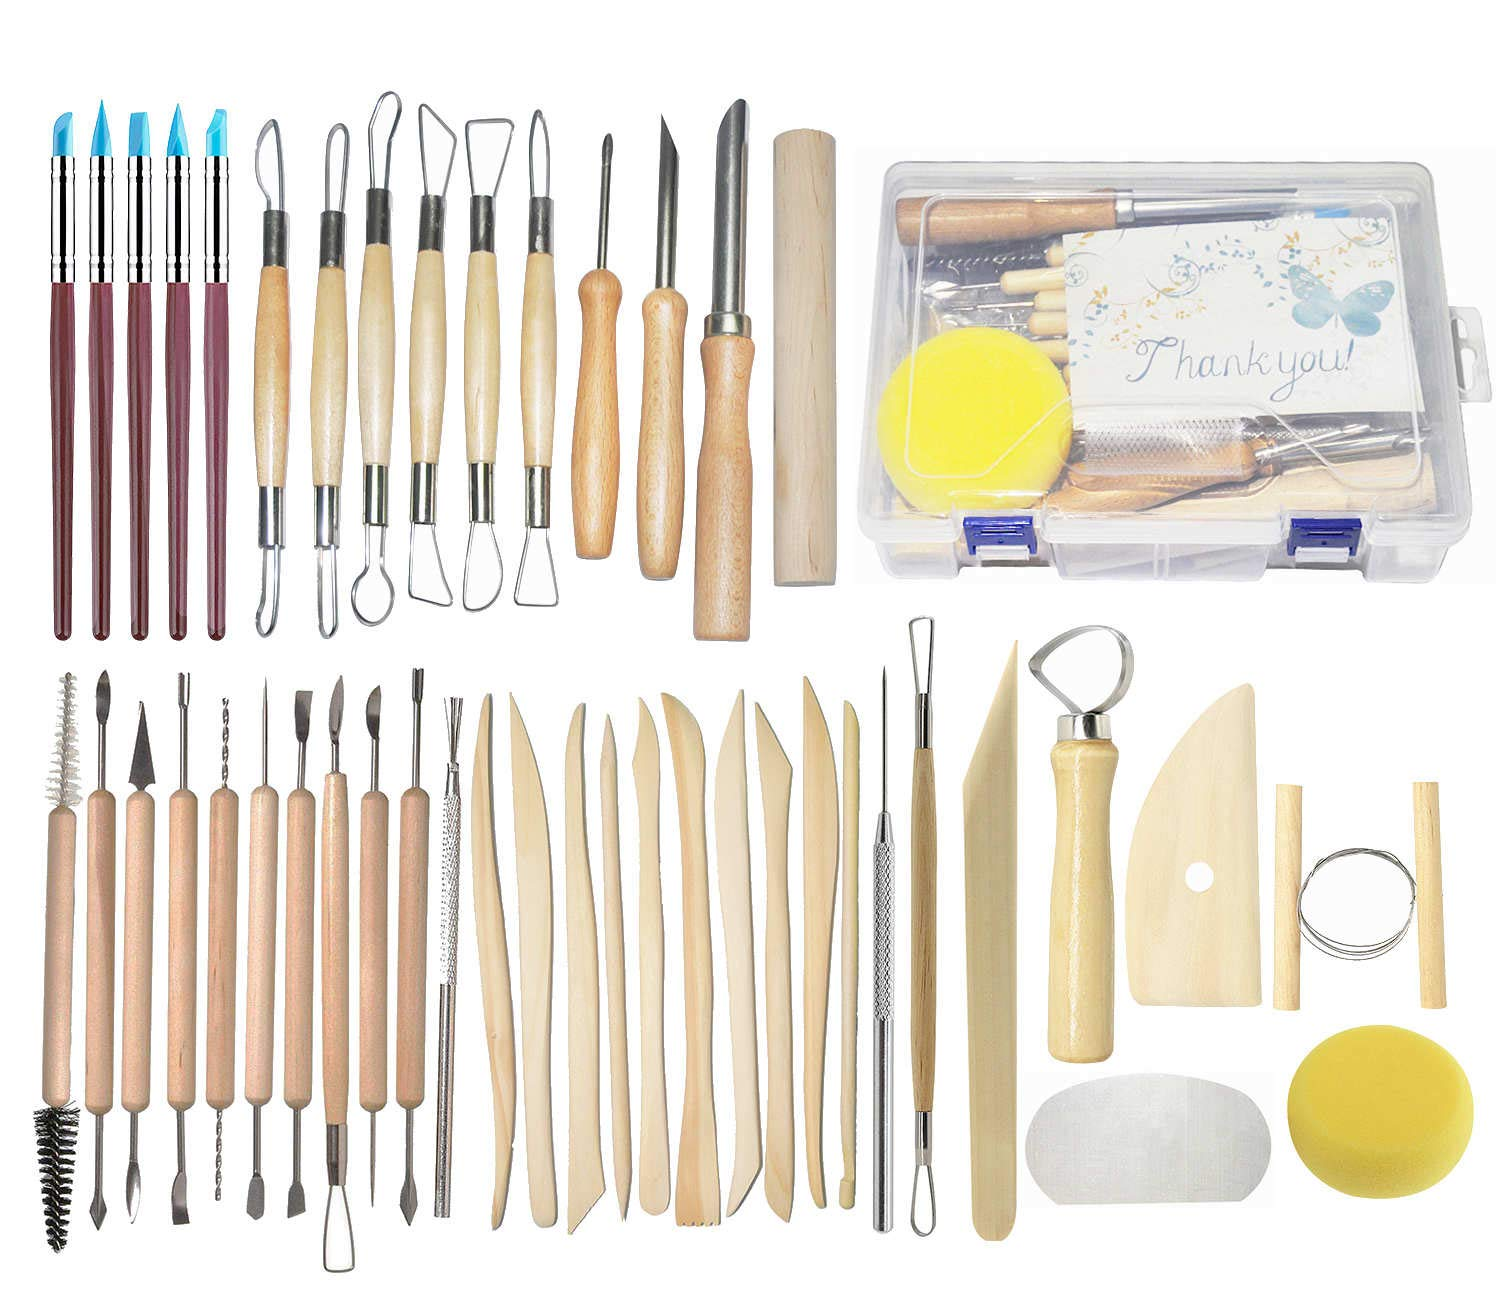 Pottery Tools, 44PCS Ceramic Clay Sculpting Tools Set with Plastic Case, for Beginners and Professional Art Crafts, by Augernis AU-358